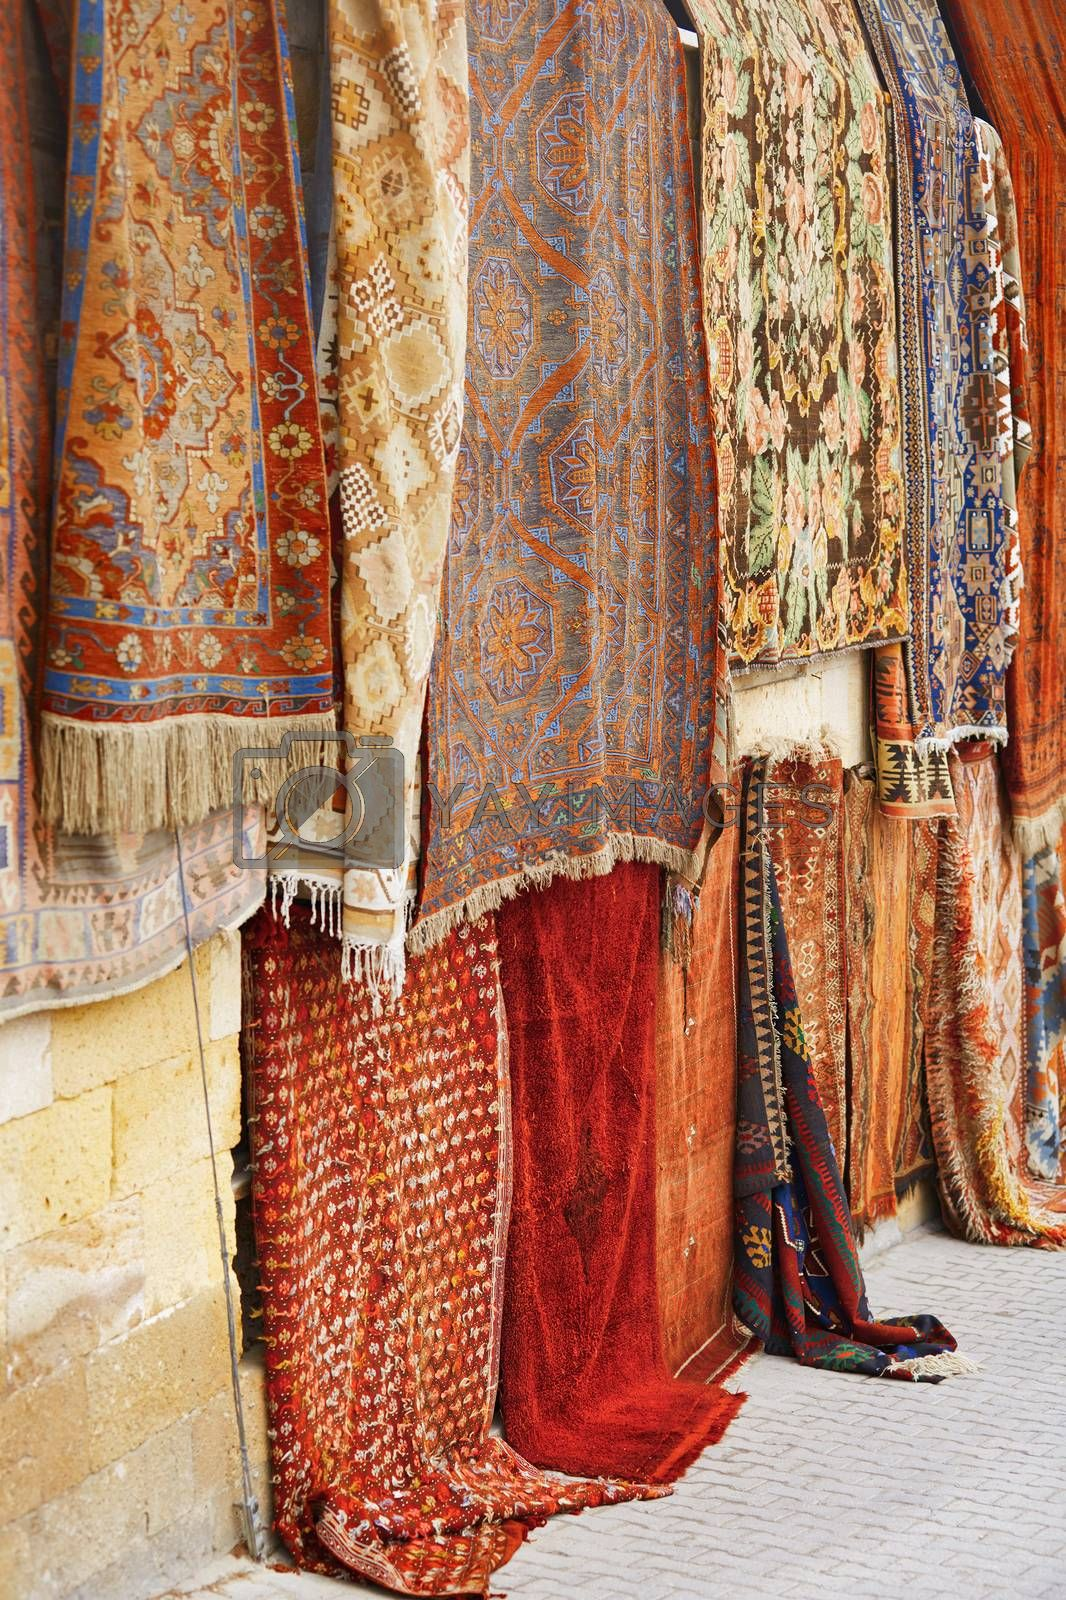 Carpets at open-air flee market